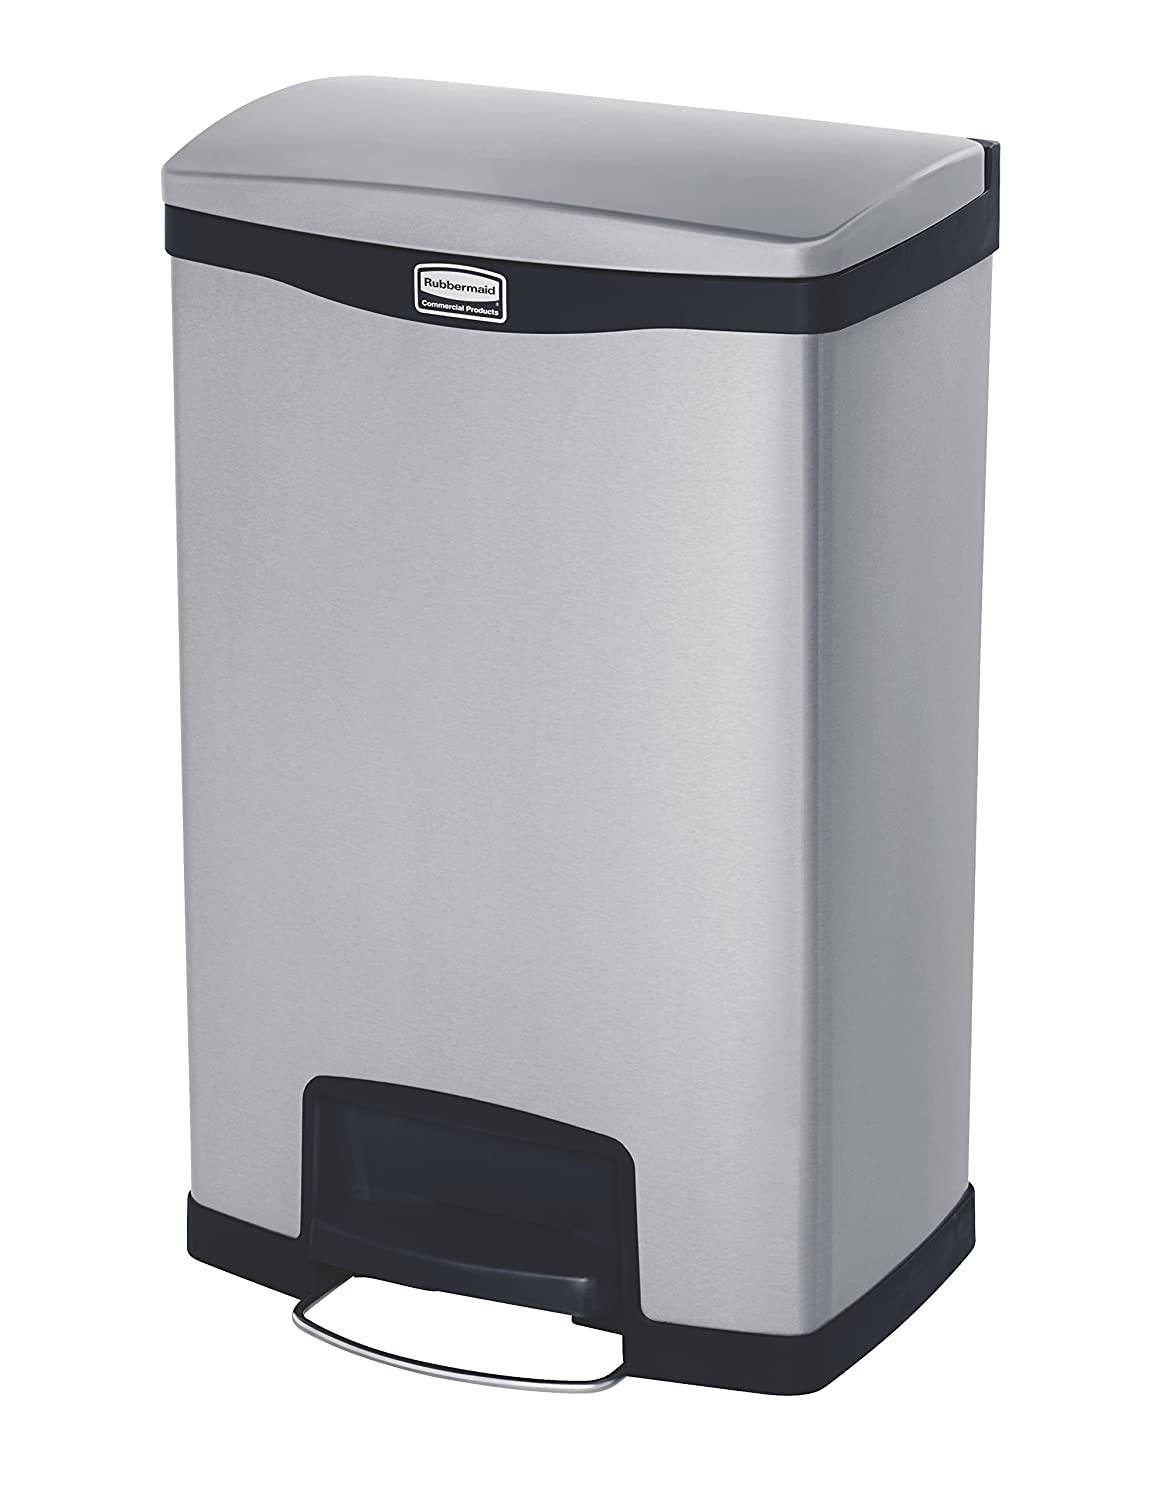 Rubbermaid Commercial Products 1901994 Rubbermaid Commercial Slim Jim Stainless Steel Front Step-On Wastebasket with Trash/Recycling Combo Liner, 13 gal, Black Trim